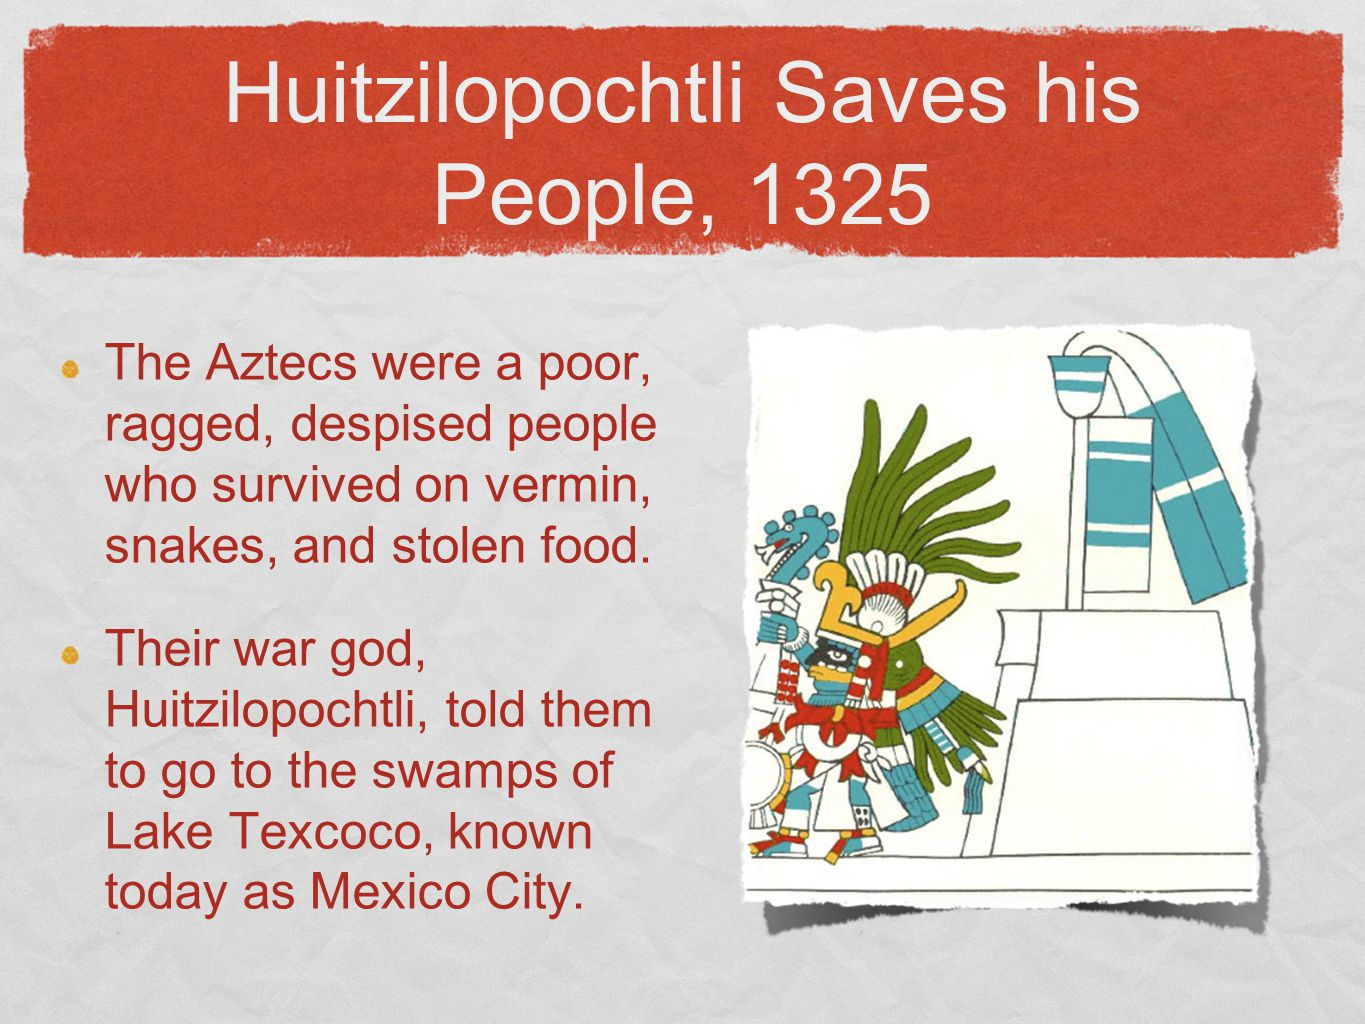 Huitzilopochtli Saves his People, 1325